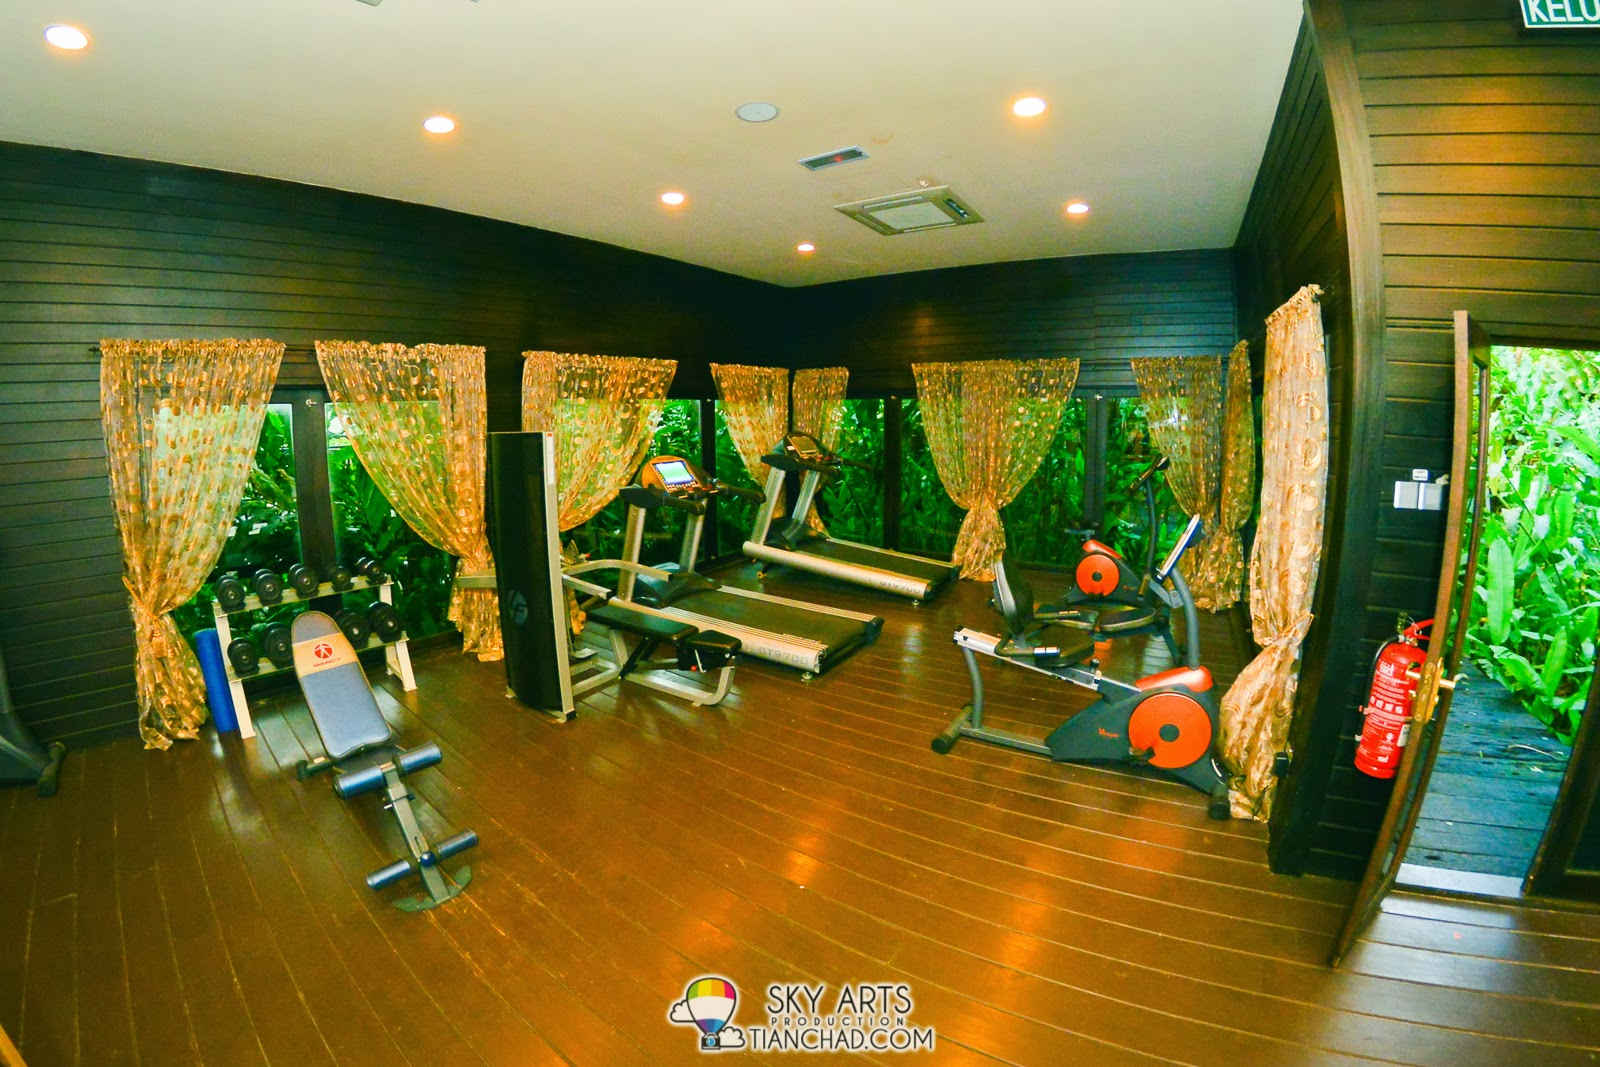 Gym room @ Philea Resort  and Spa Ayer keroh, Melaka